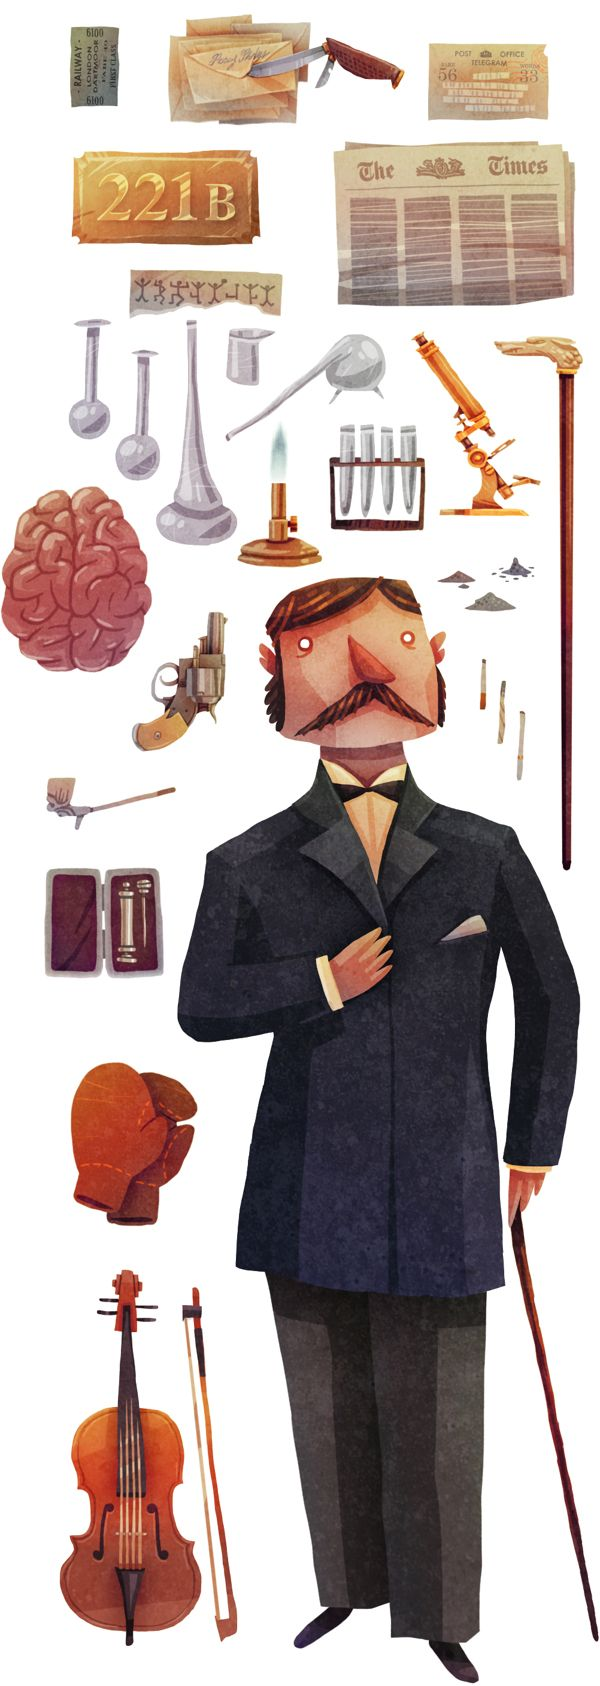 The Tools of a Consultant Detective - T-SHIRT AVAILABLE by David Fernández Huerta, via Behance